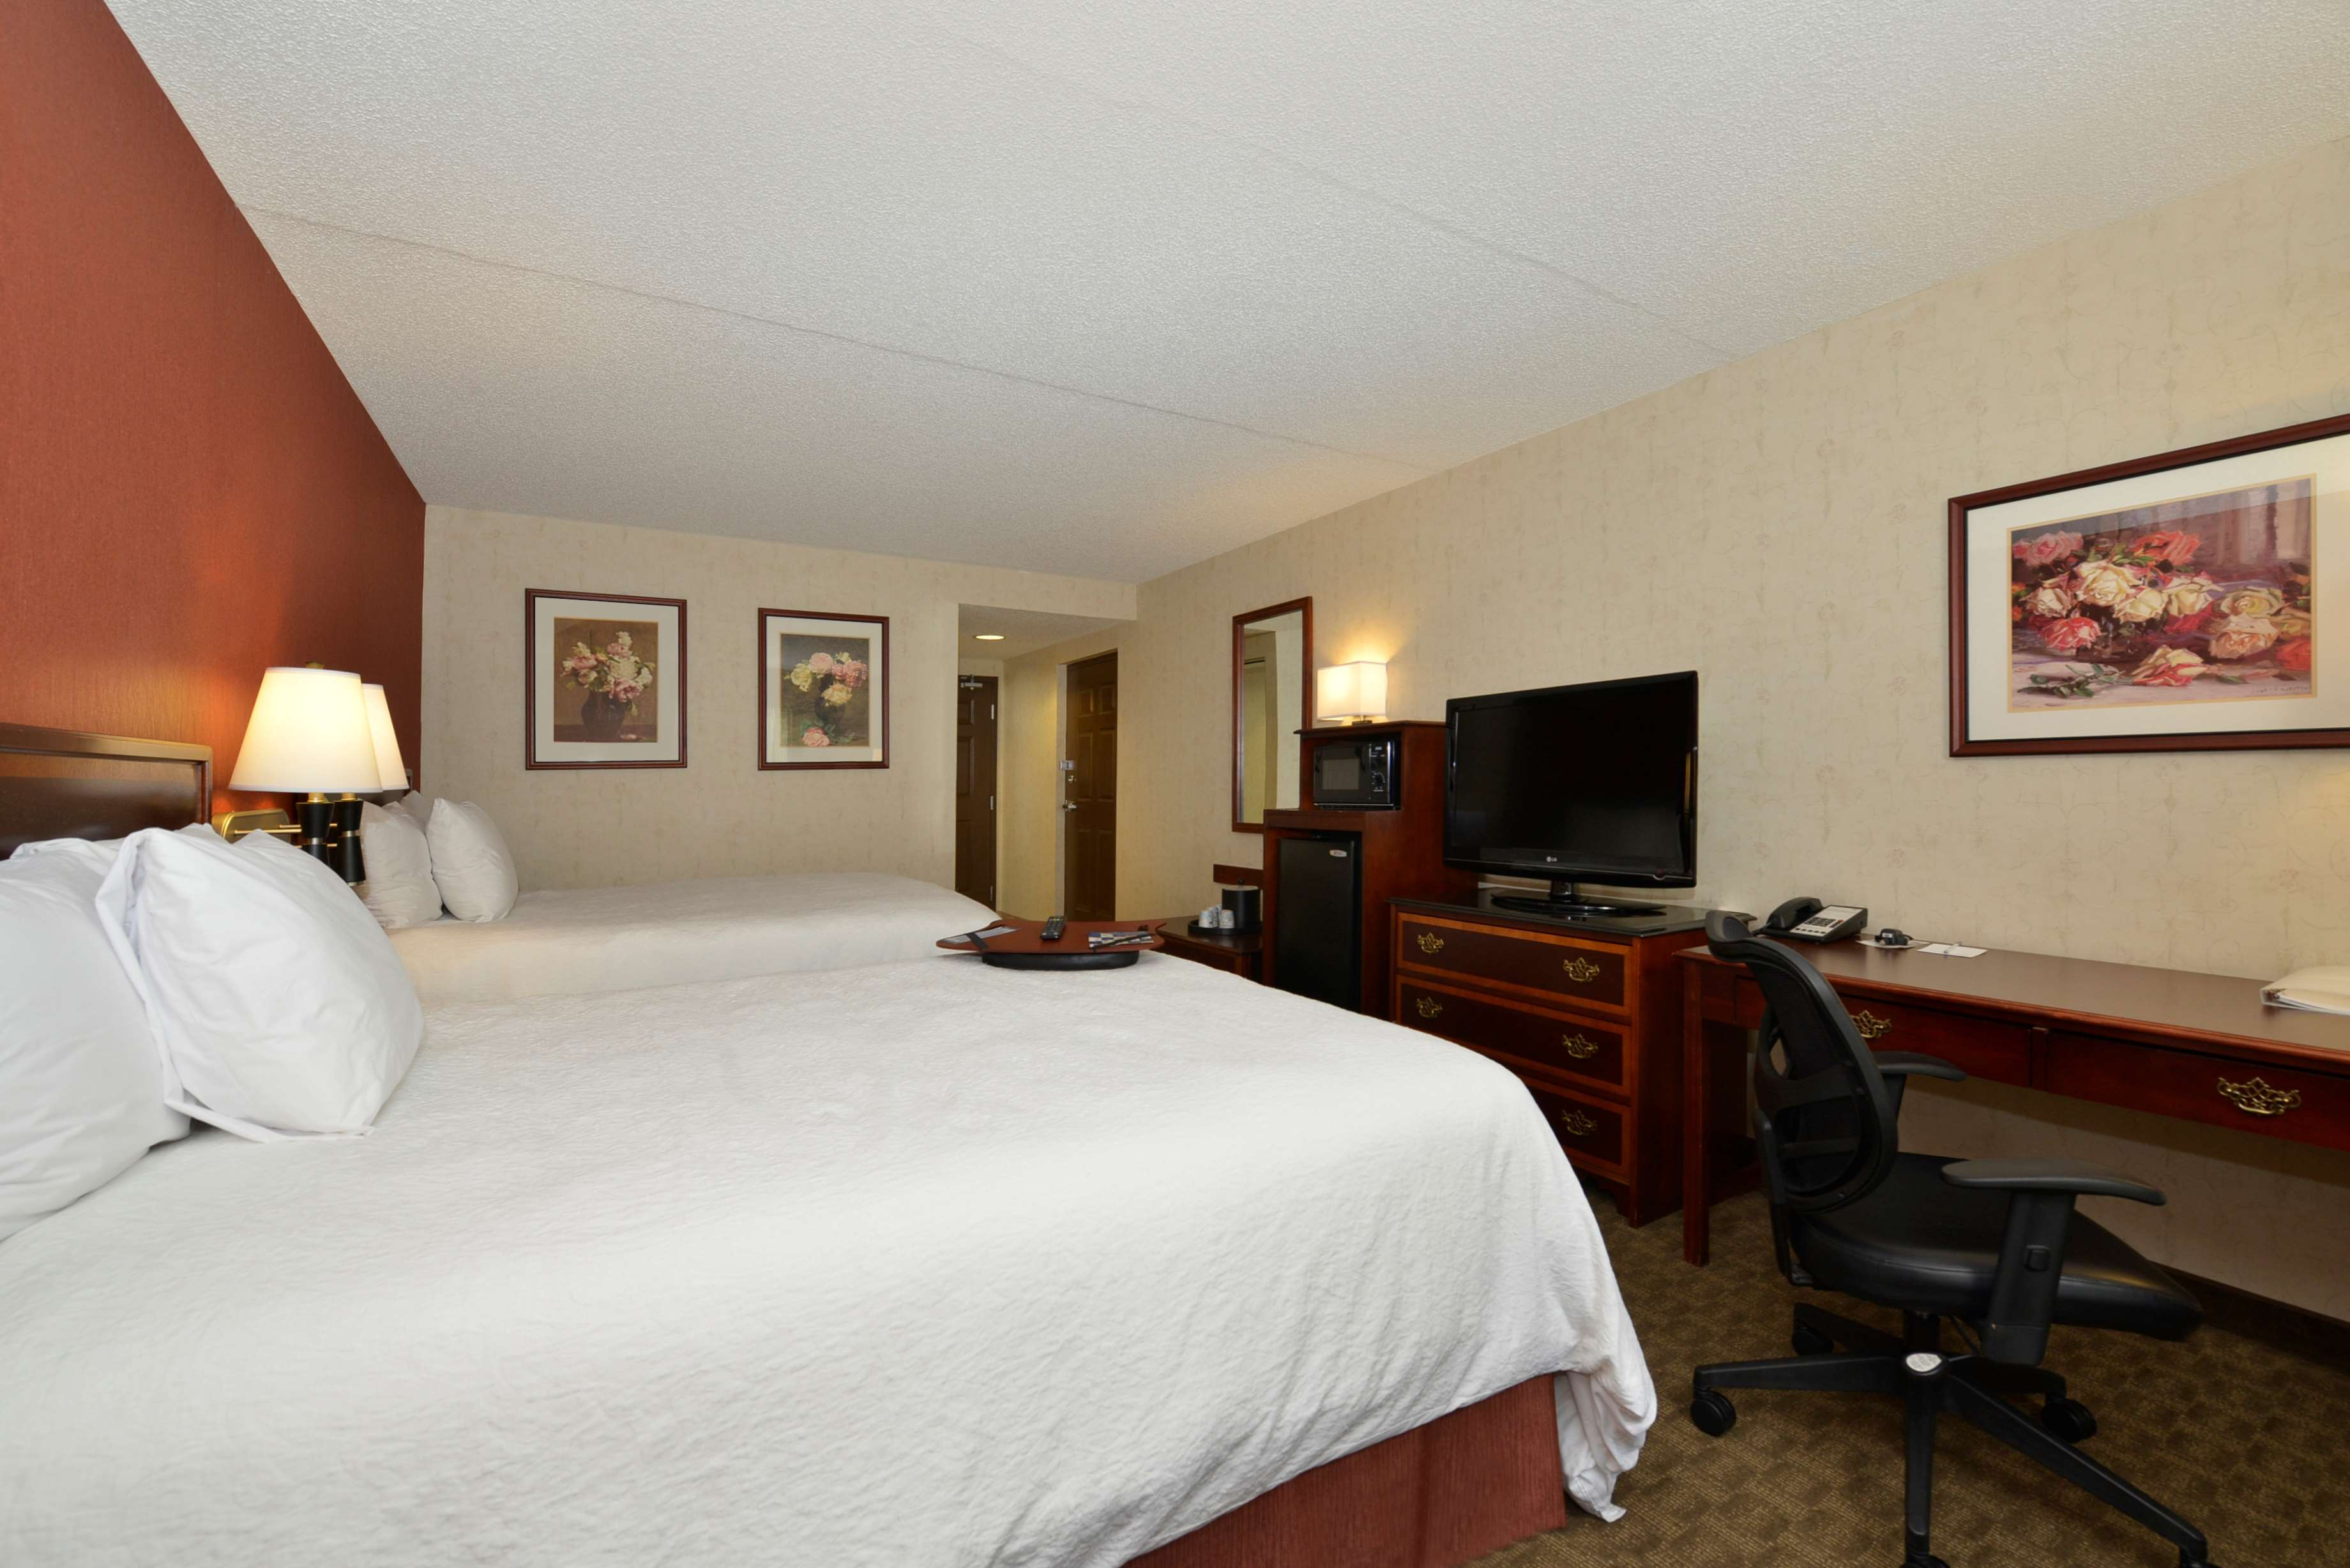 Hampton Inn East Aurora image 20